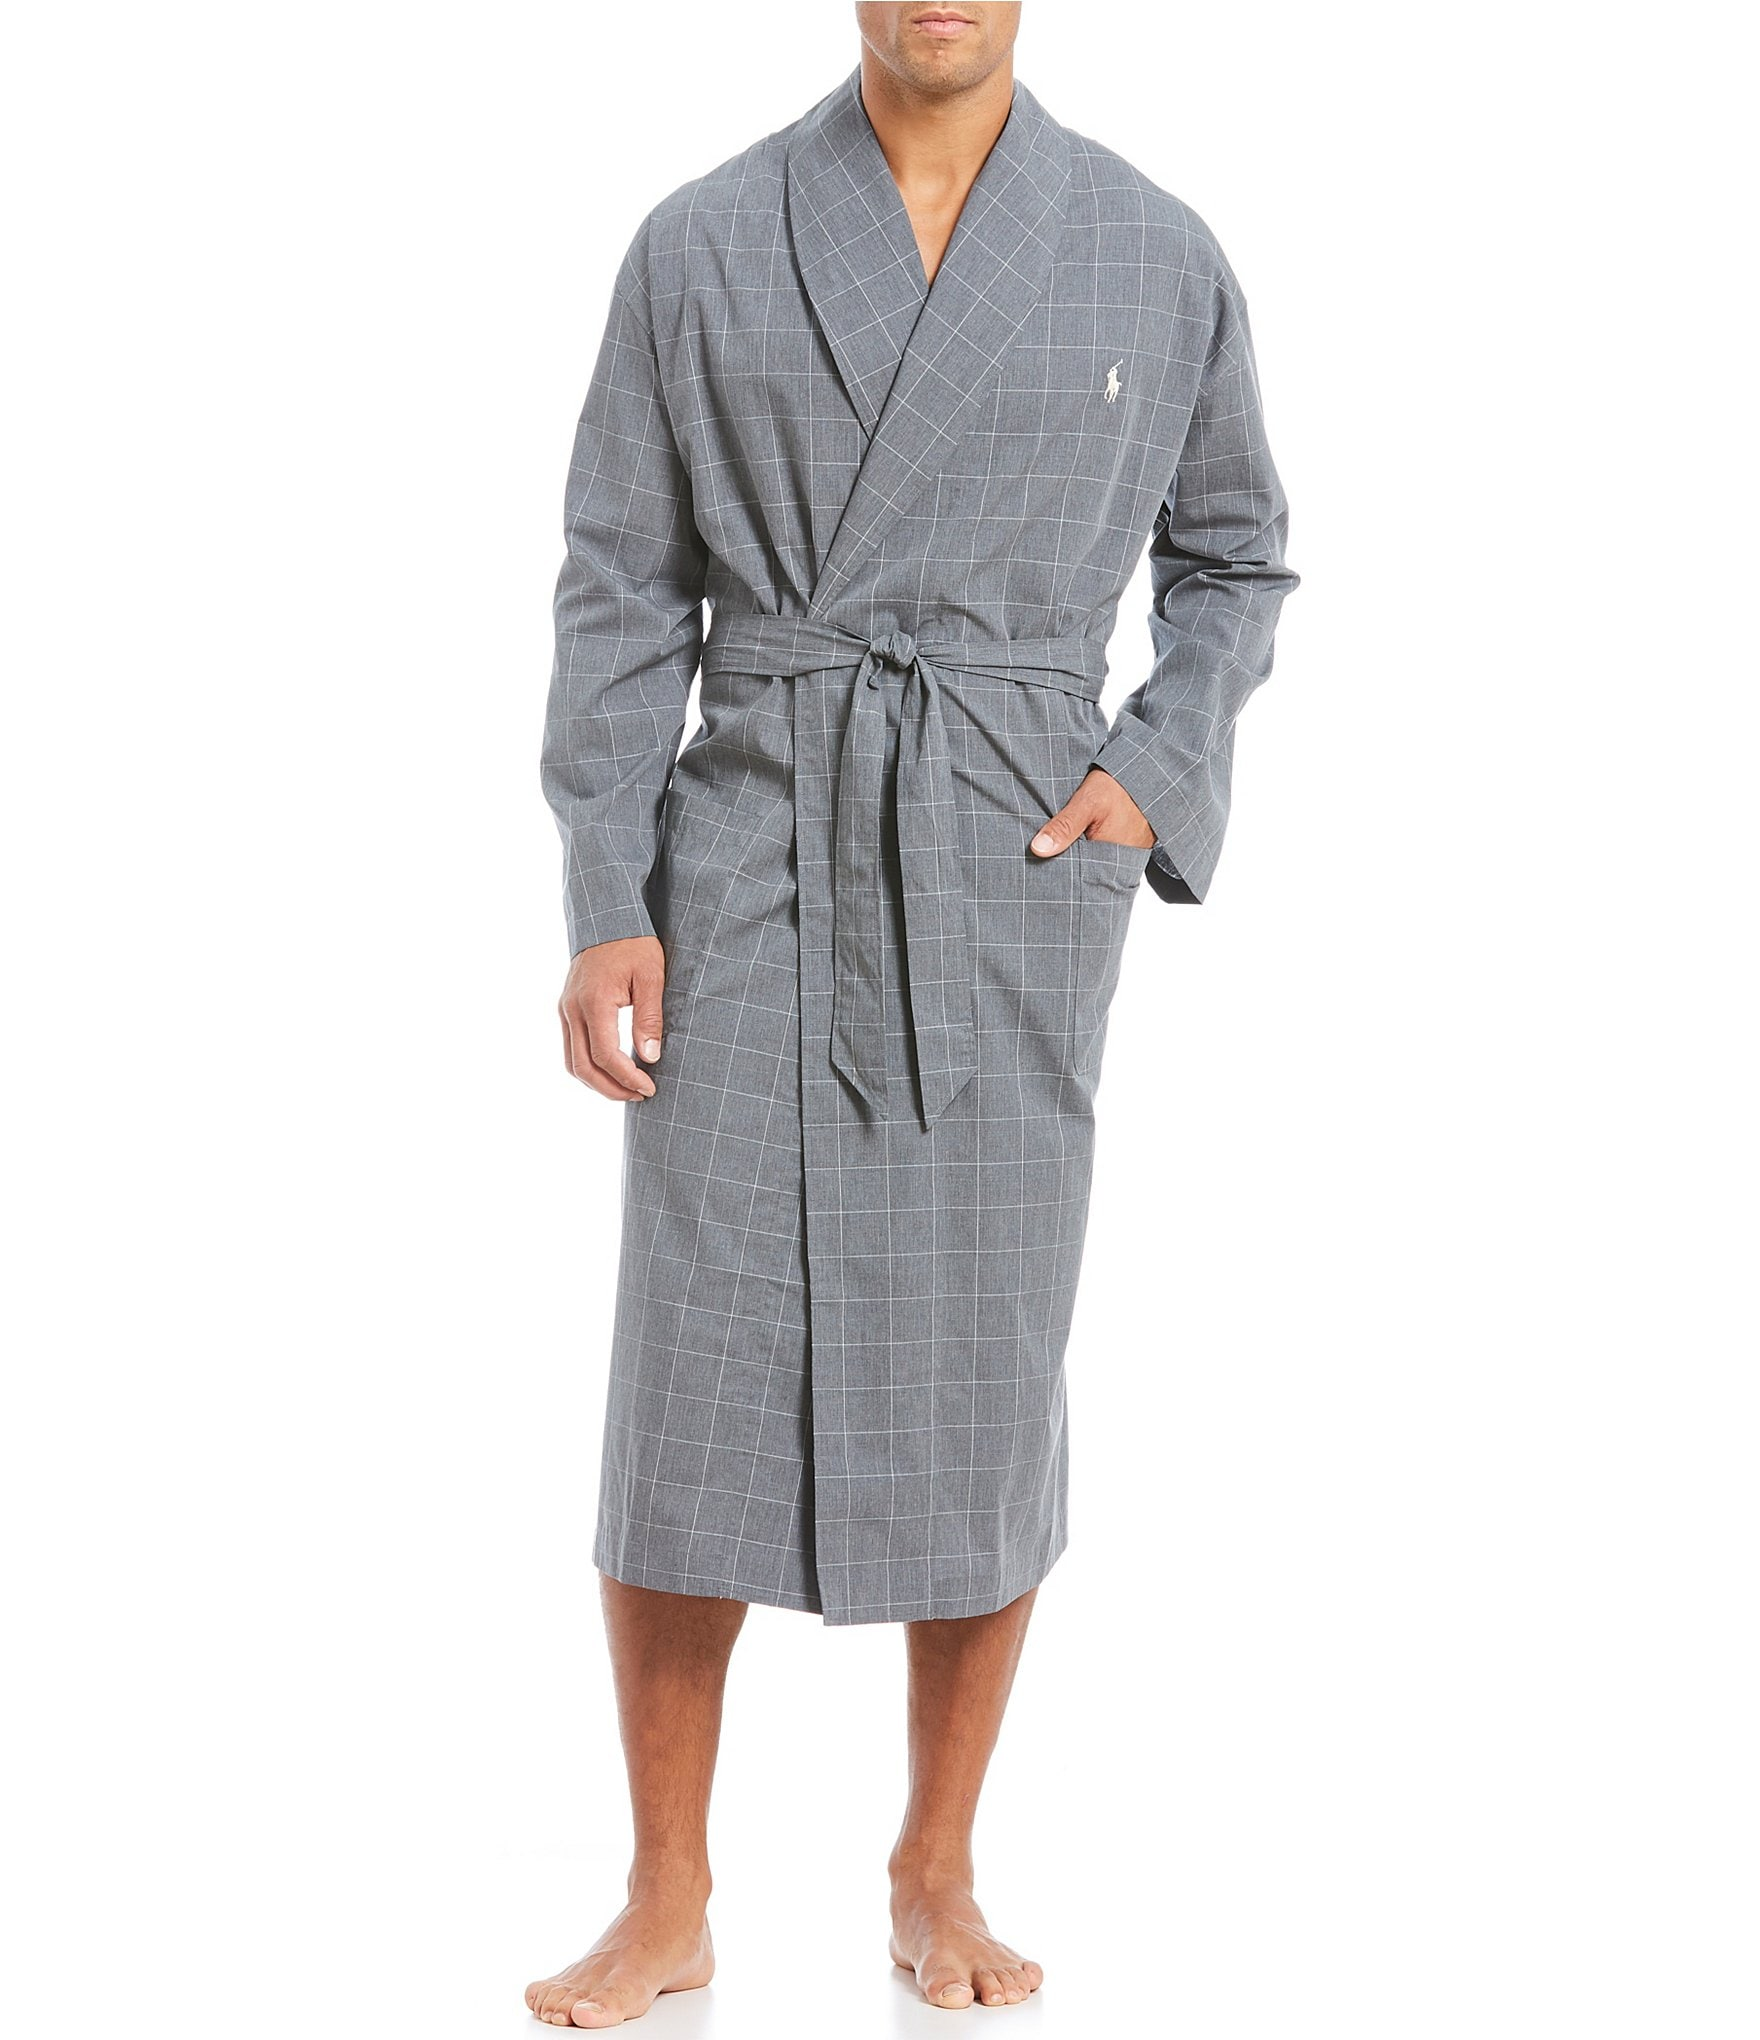 Polo Robe Lauren Ralph Polo Ralph Windowpane Lauren Windowpane QtsdhrC